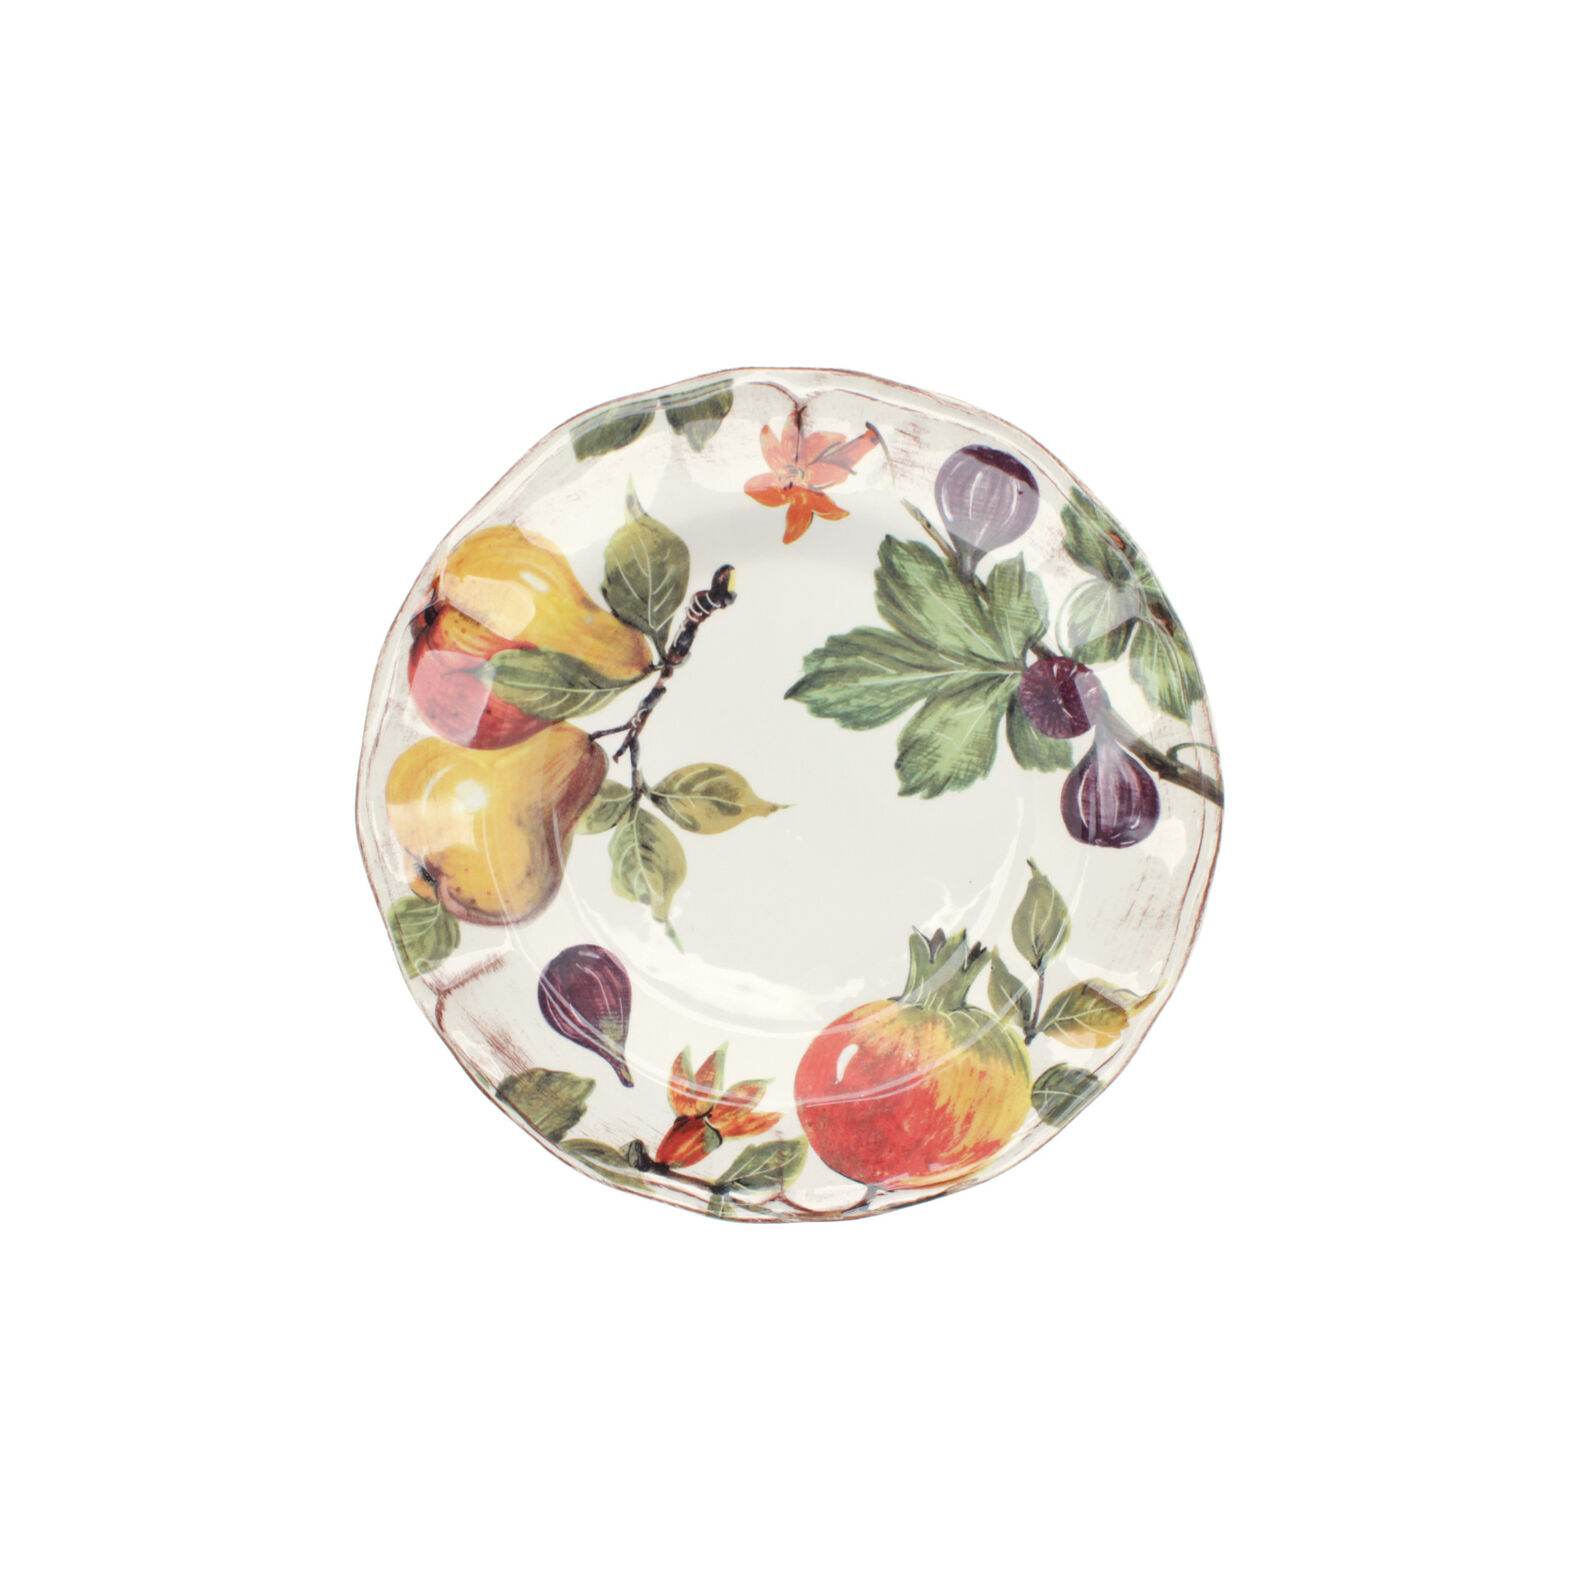 Grenade painted ceramic dinner plate coincasa for Where to buy ceramic plates to paint